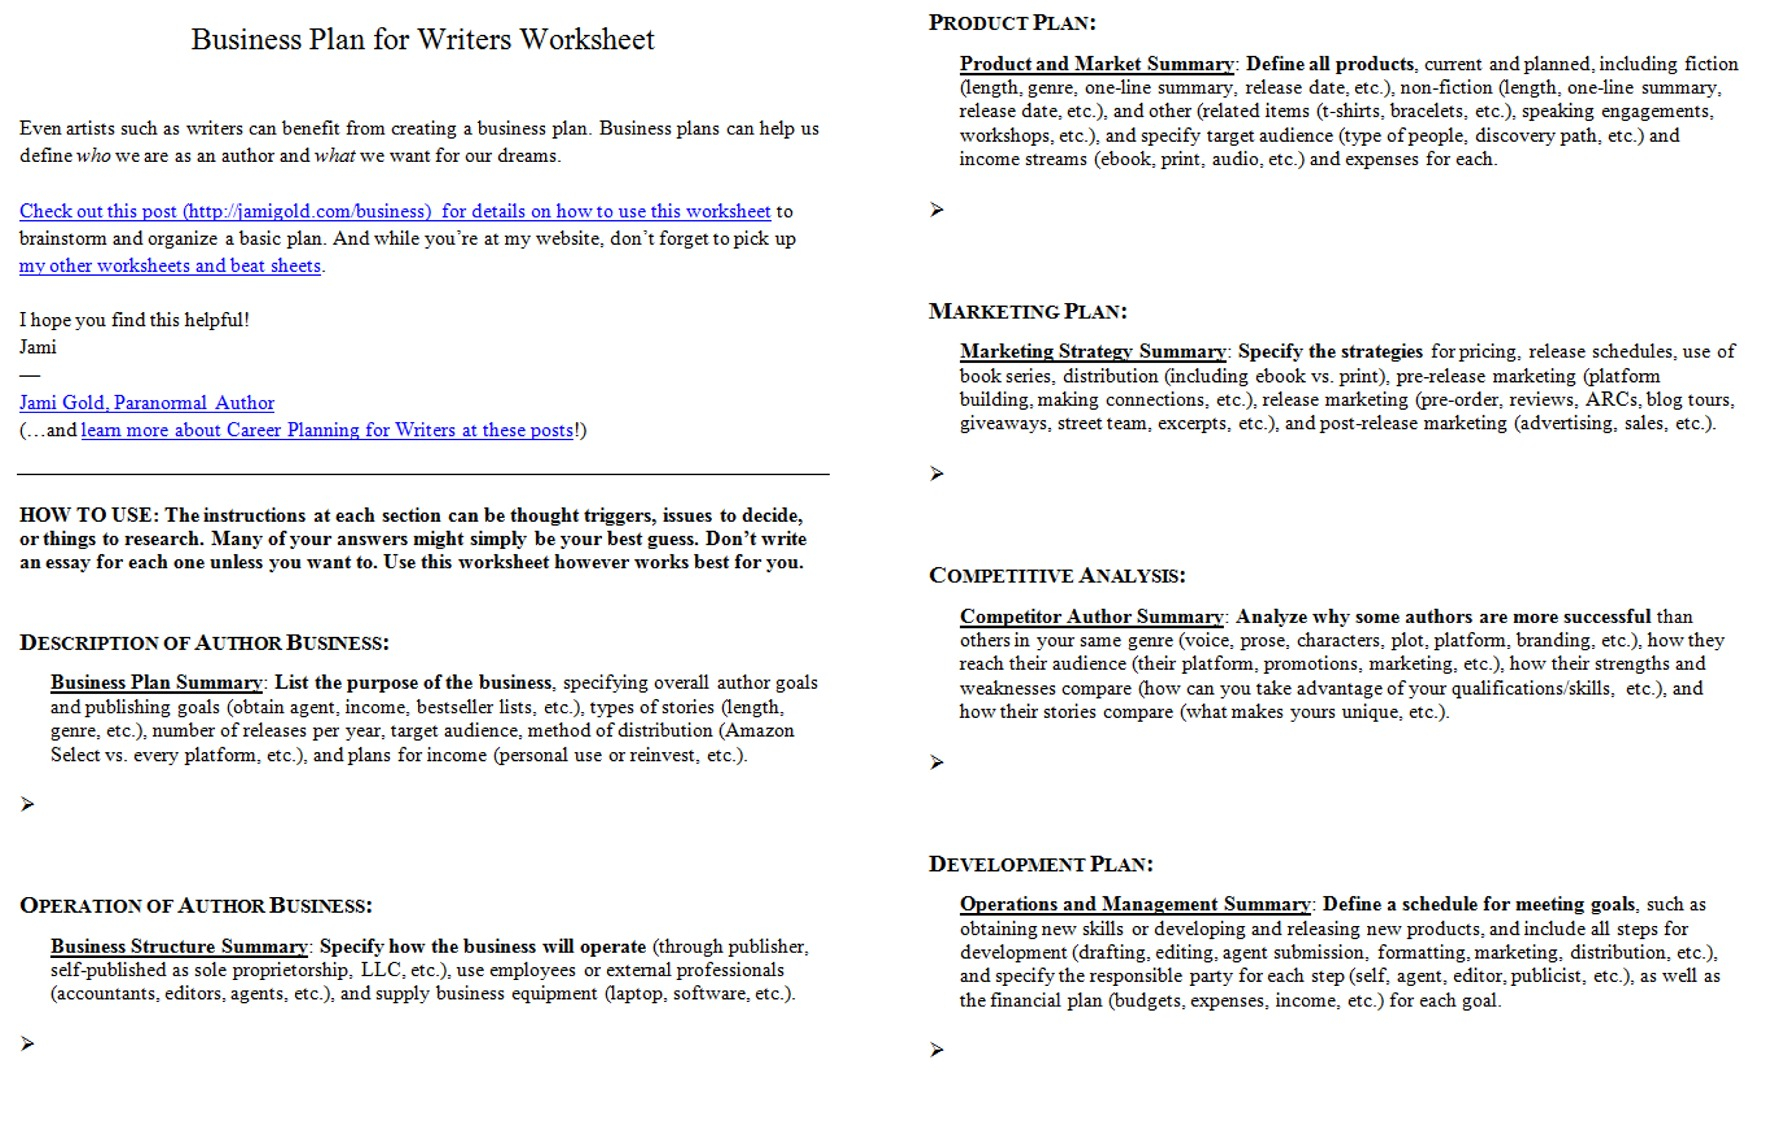 Weirdmailus  Pleasing Worksheets For Writers  Jami Gold Paranormal Author With Gorgeous Screen Shot Of Both Pages Of The Business Plan For Writers Worksheet With Cute Social Security Benefit Worksheet Also Resume Builder Worksheet In Addition Fraction Of A Set Worksheet And Irregular Verbs Worksheet Nd Grade As Well As Math U See Worksheet Generator Additionally First Grade Math Addition Worksheets From Jamigoldcom With Weirdmailus  Gorgeous Worksheets For Writers  Jami Gold Paranormal Author With Cute Screen Shot Of Both Pages Of The Business Plan For Writers Worksheet And Pleasing Social Security Benefit Worksheet Also Resume Builder Worksheet In Addition Fraction Of A Set Worksheet From Jamigoldcom